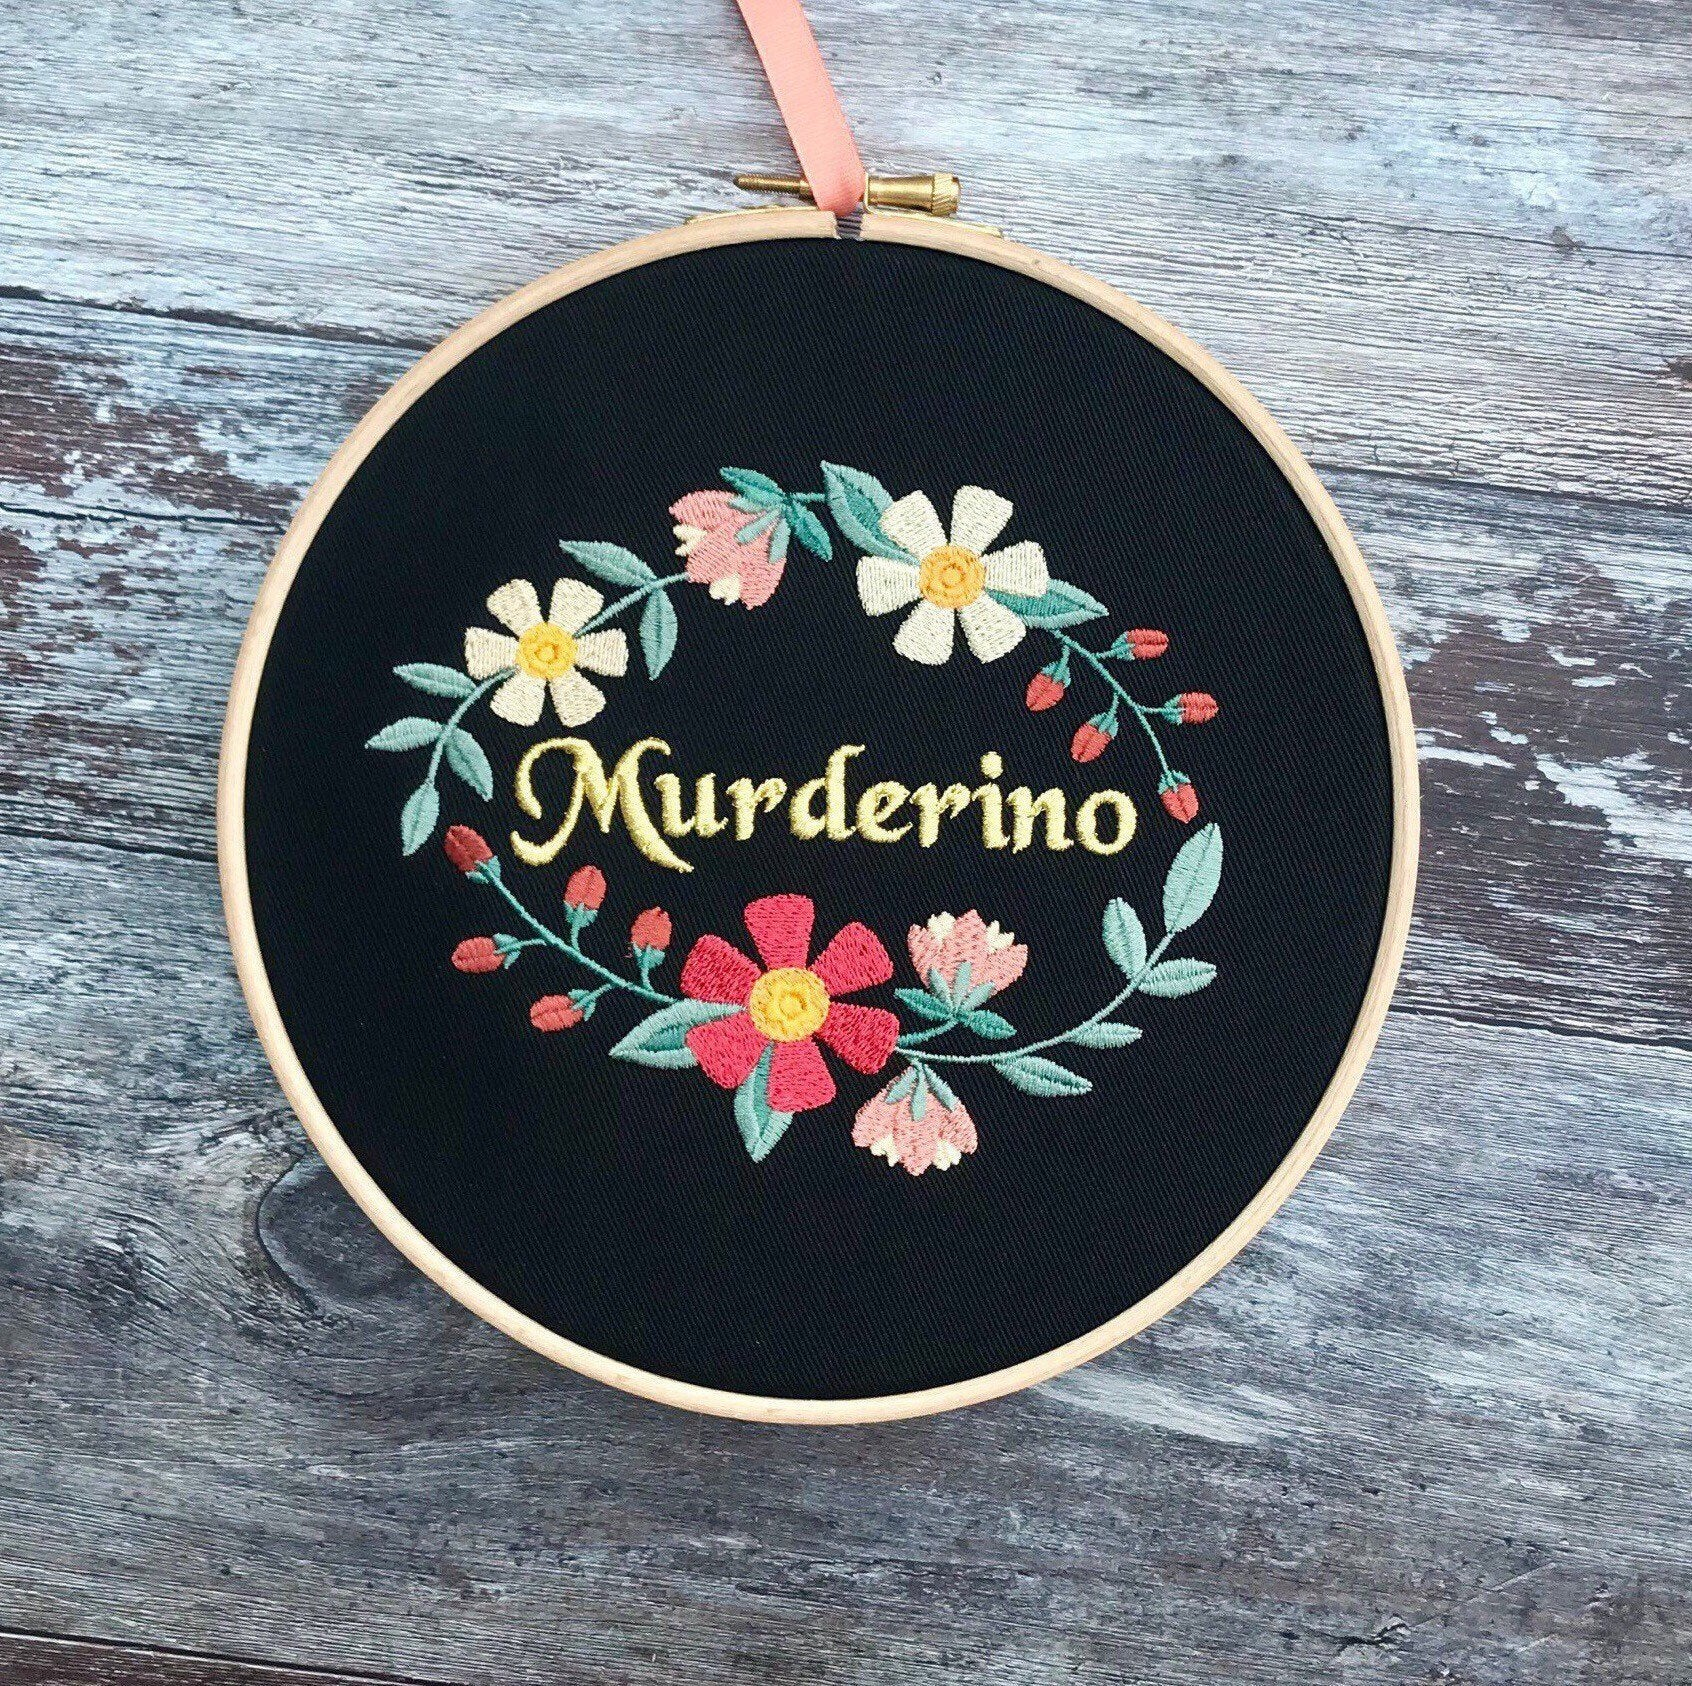 Murderino with floral wreath, My Favorite Murder Embroidery hoop art